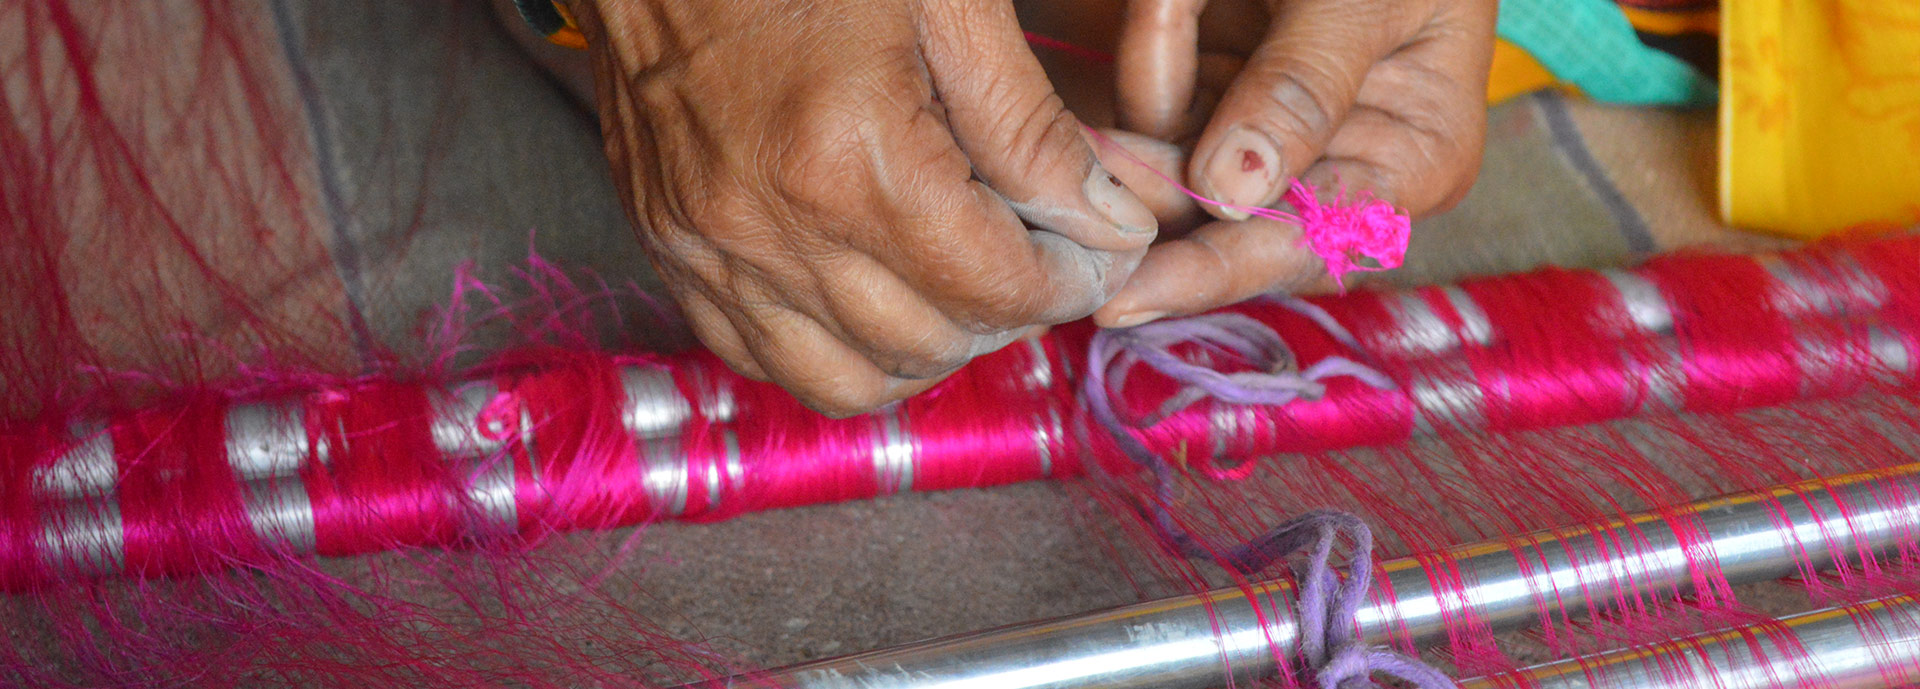 AIACA has uplifted <br/>livelihoods of more than <br/>15000 artisans across <br/>India